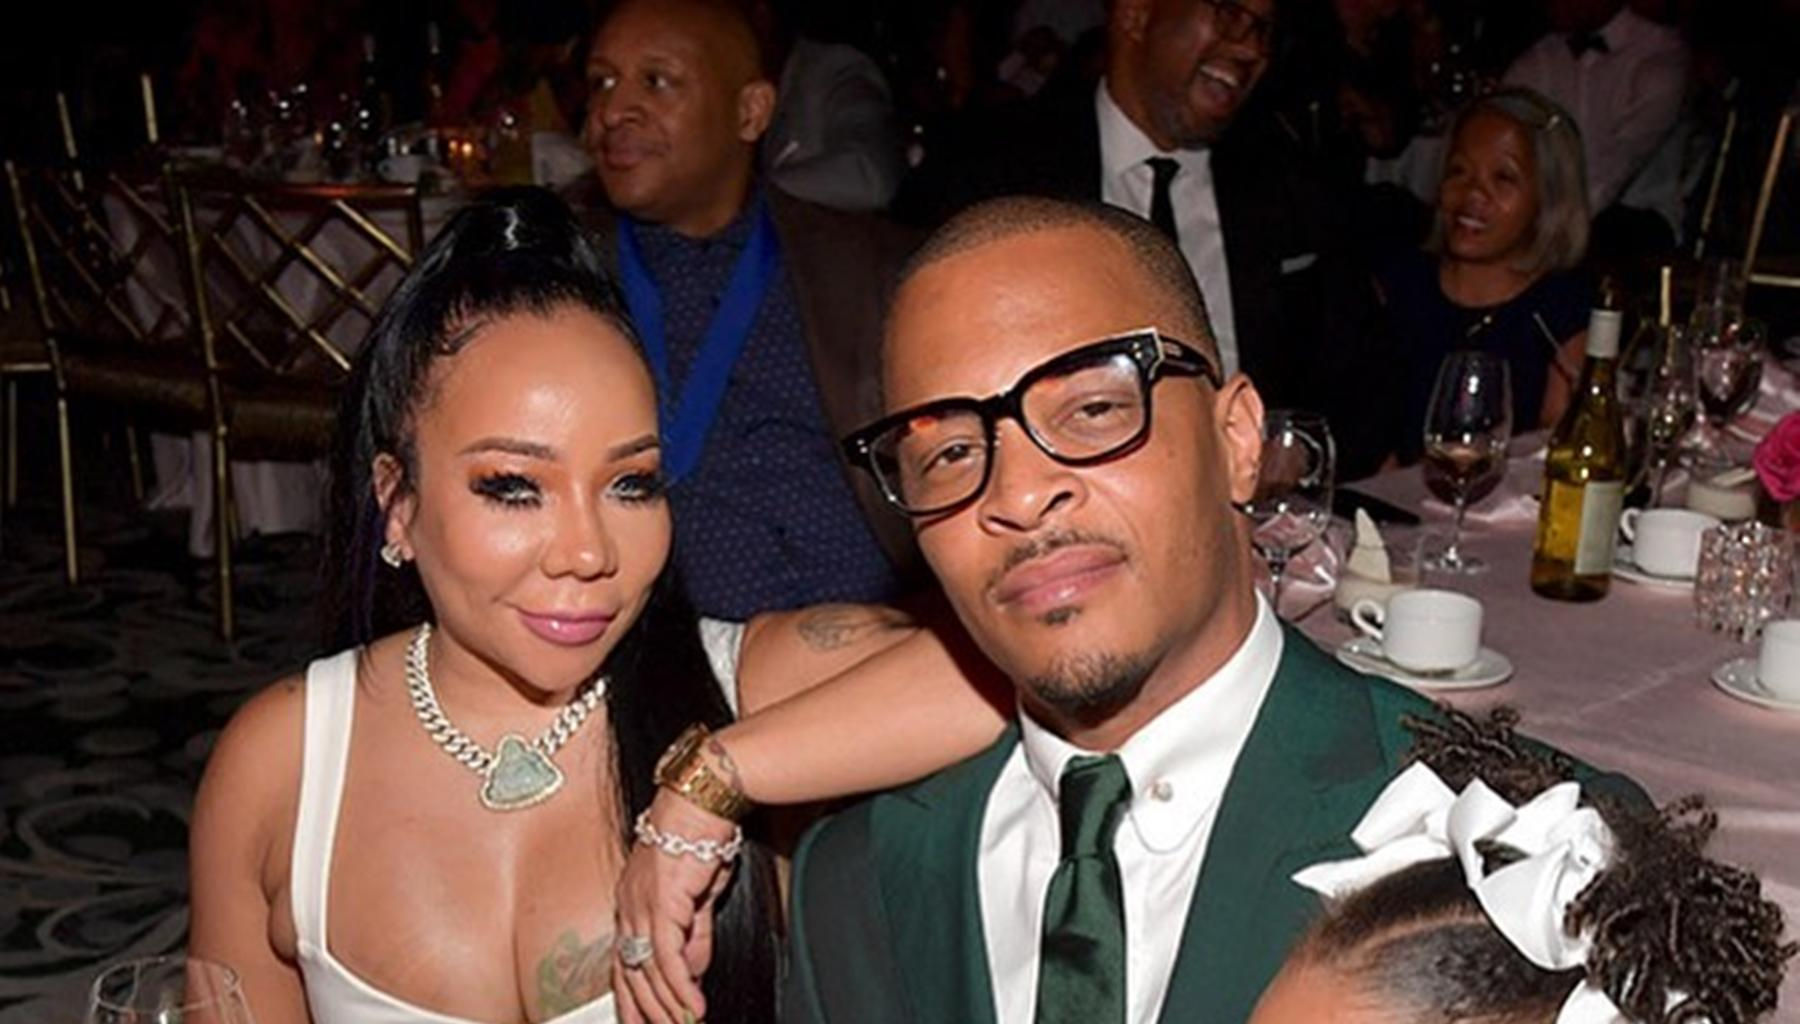 T.I. Is Twinning With His Baby Girl, Heiress Harris - See The Jaw-Dropping Photo